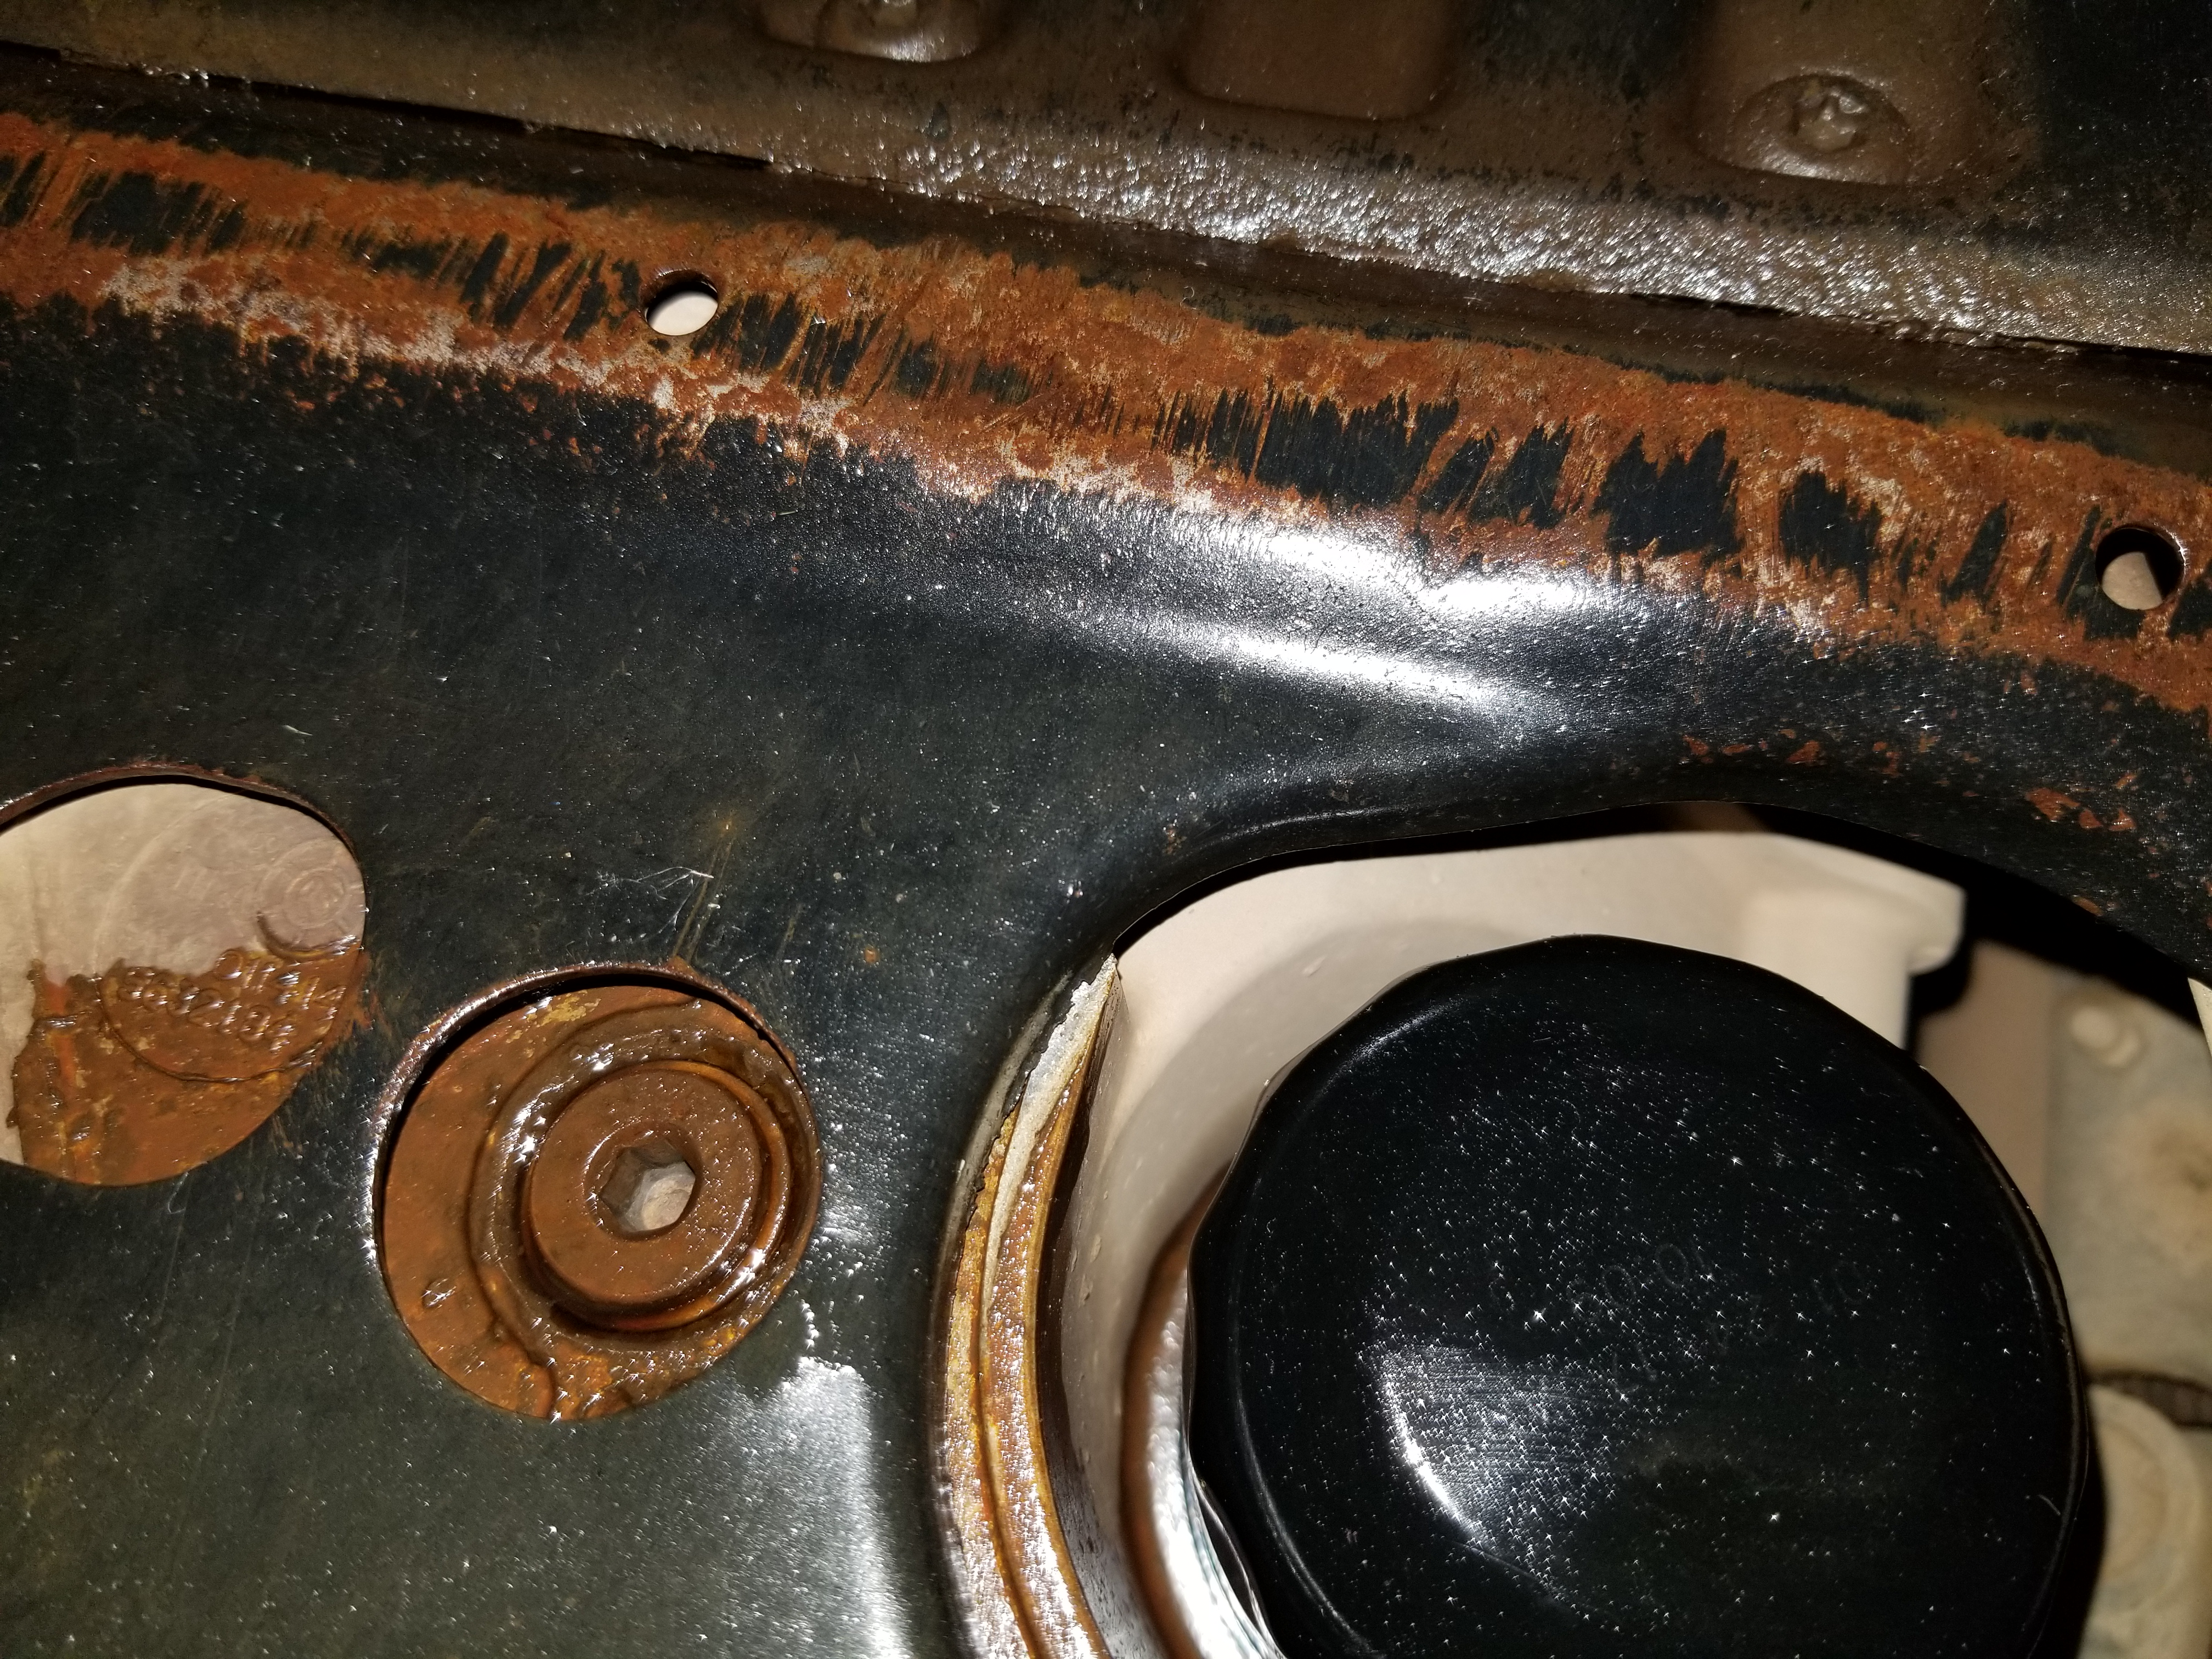 4 Seater Atv >> Stripped oil drain plug, how to fix? 2012 Sportsman 850 ...